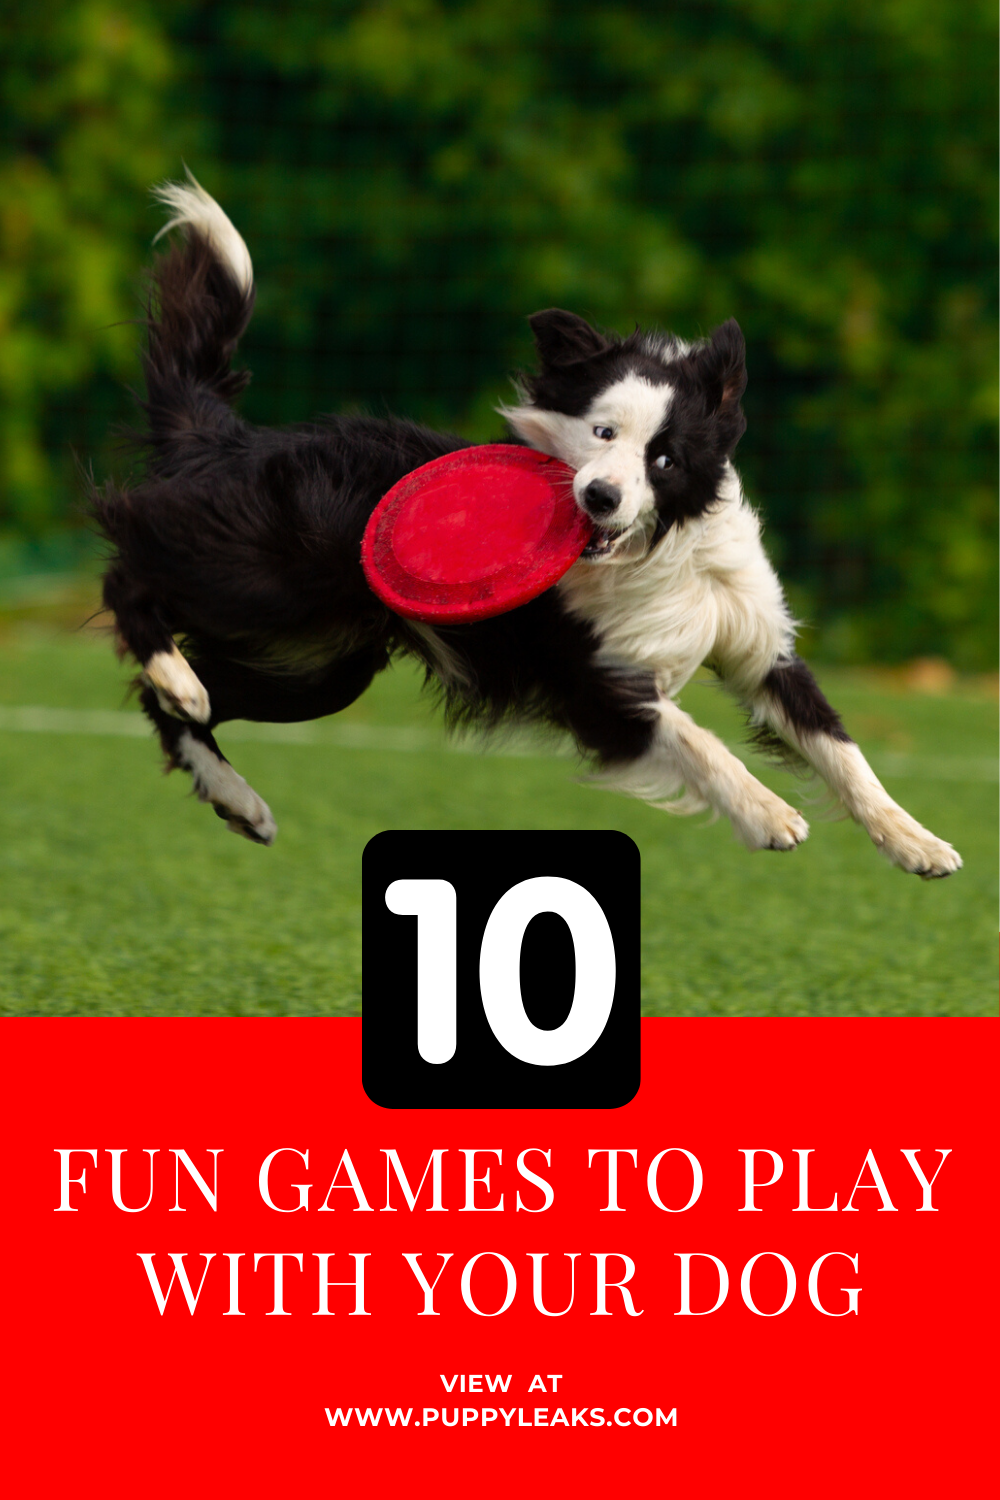 10 Fun Games to Play With Your Dog in 2020 (With images